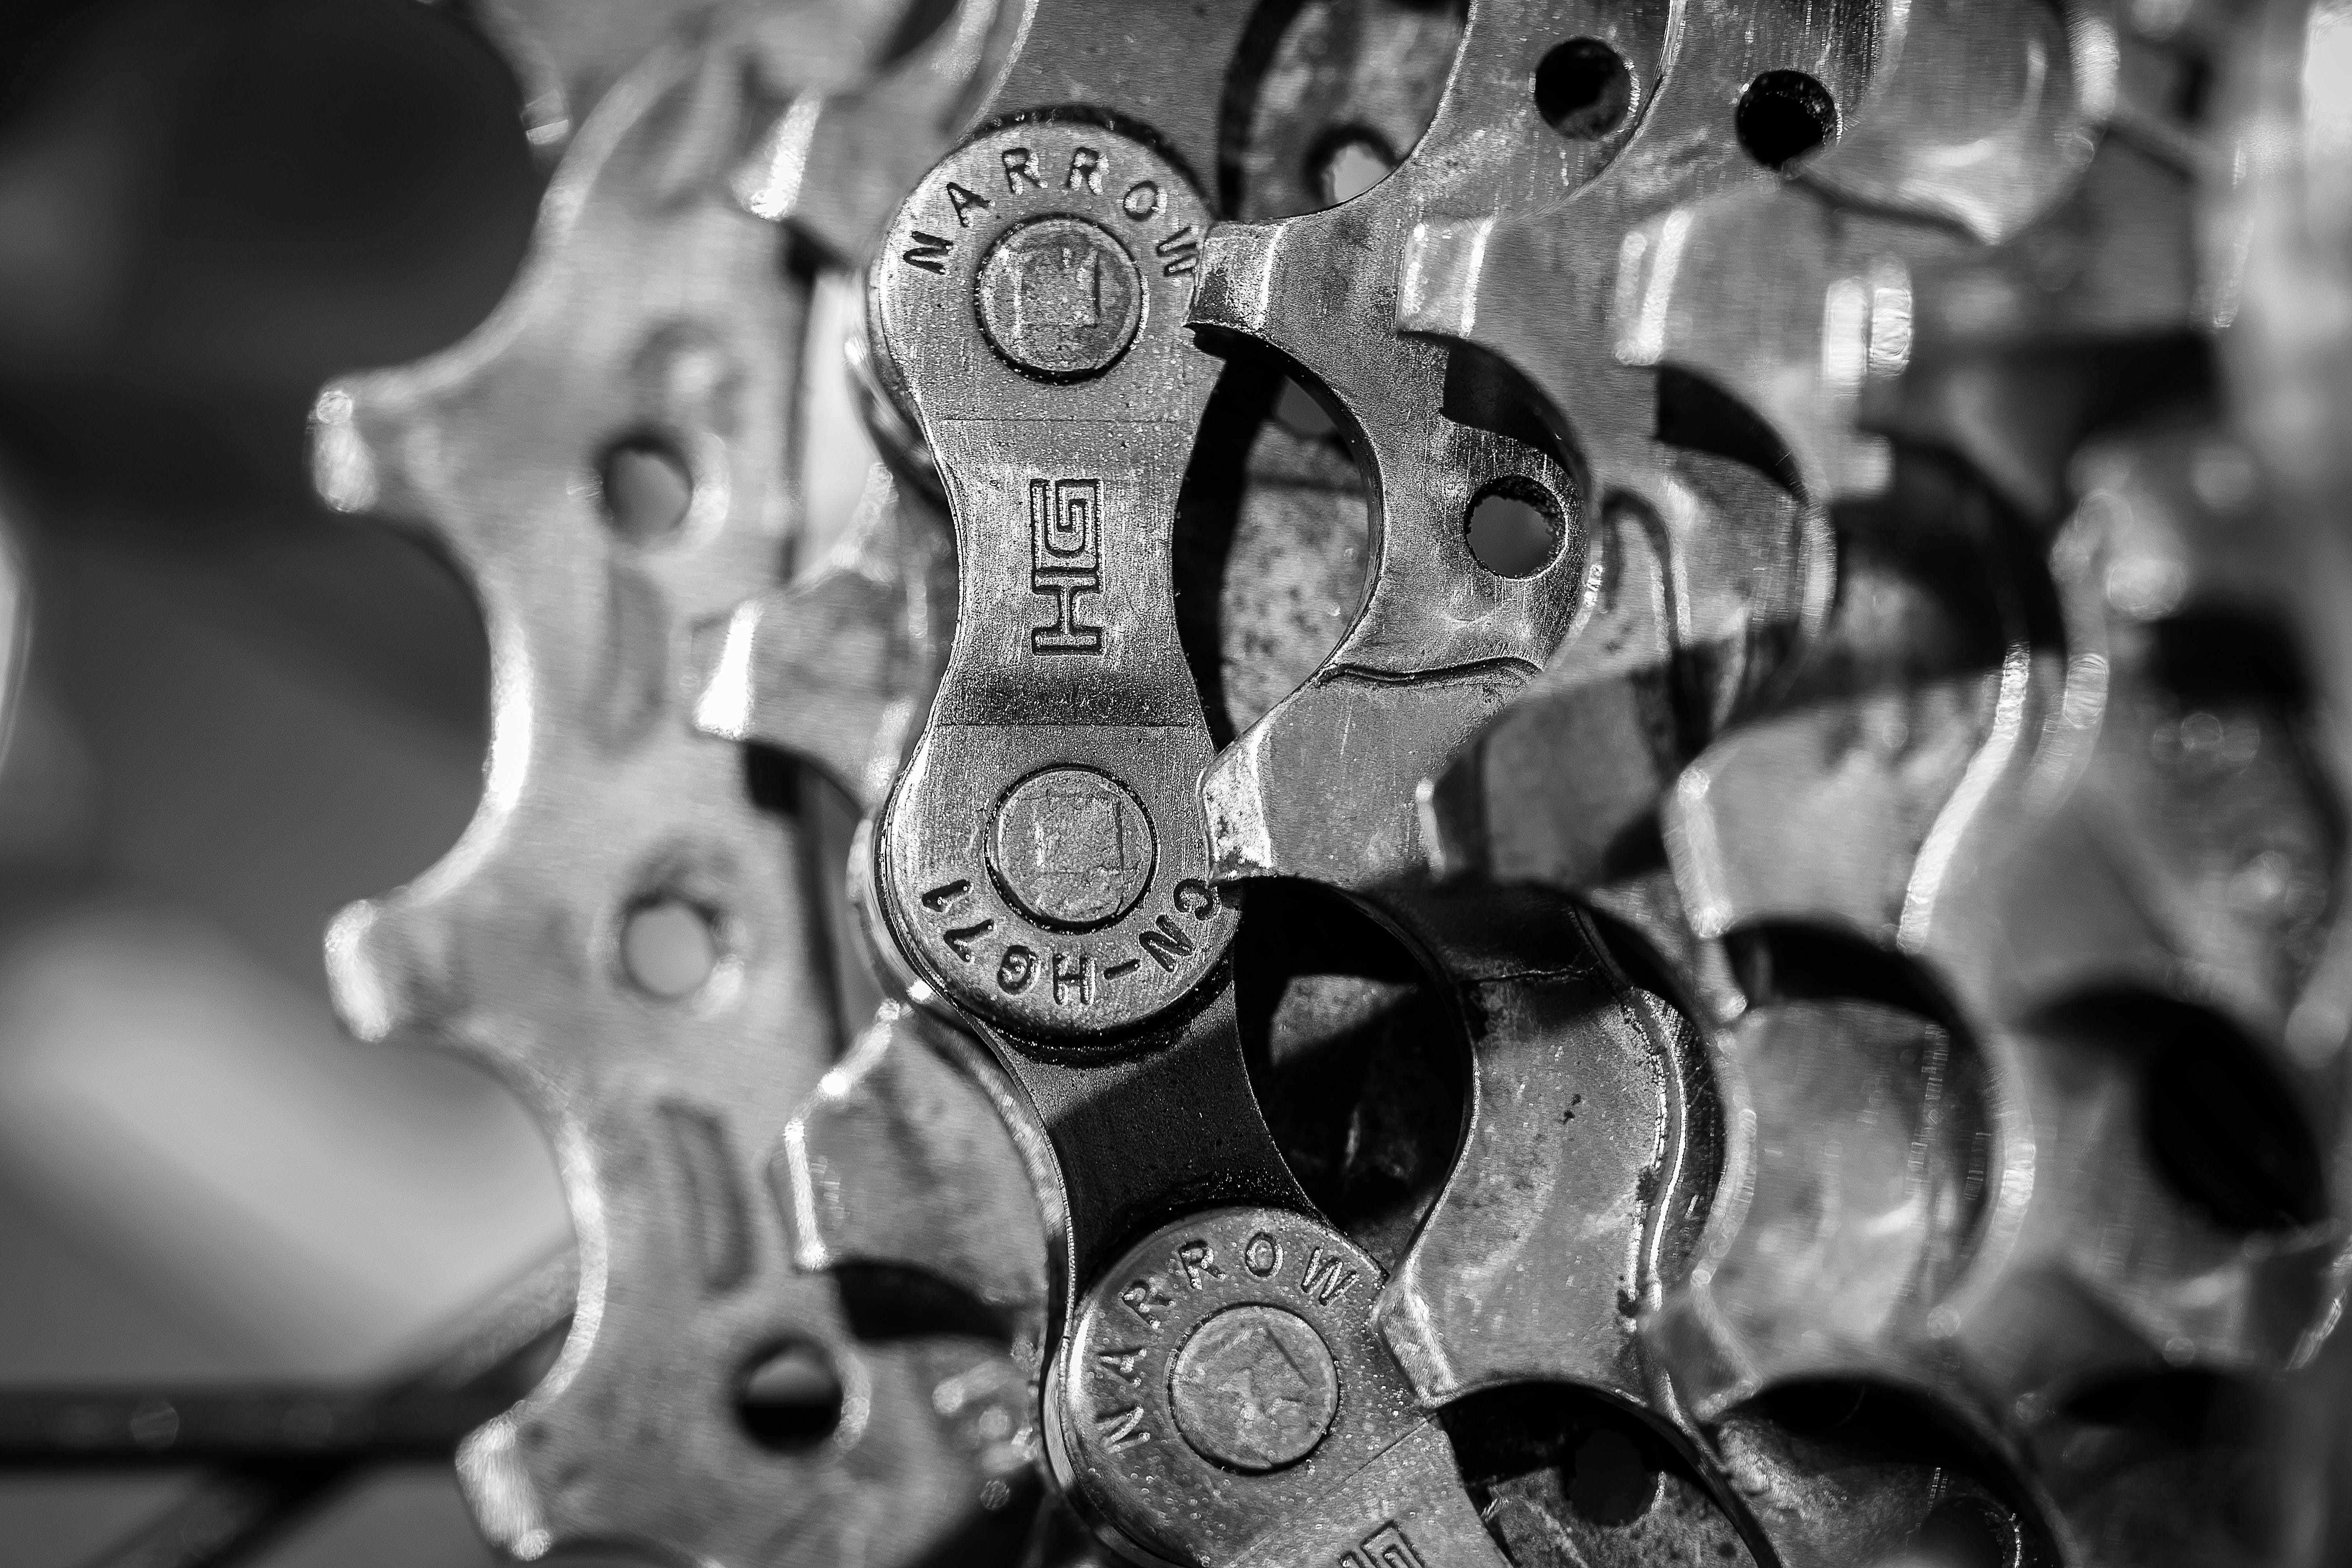 Free stock photo of metal, bicycle, chain, gear